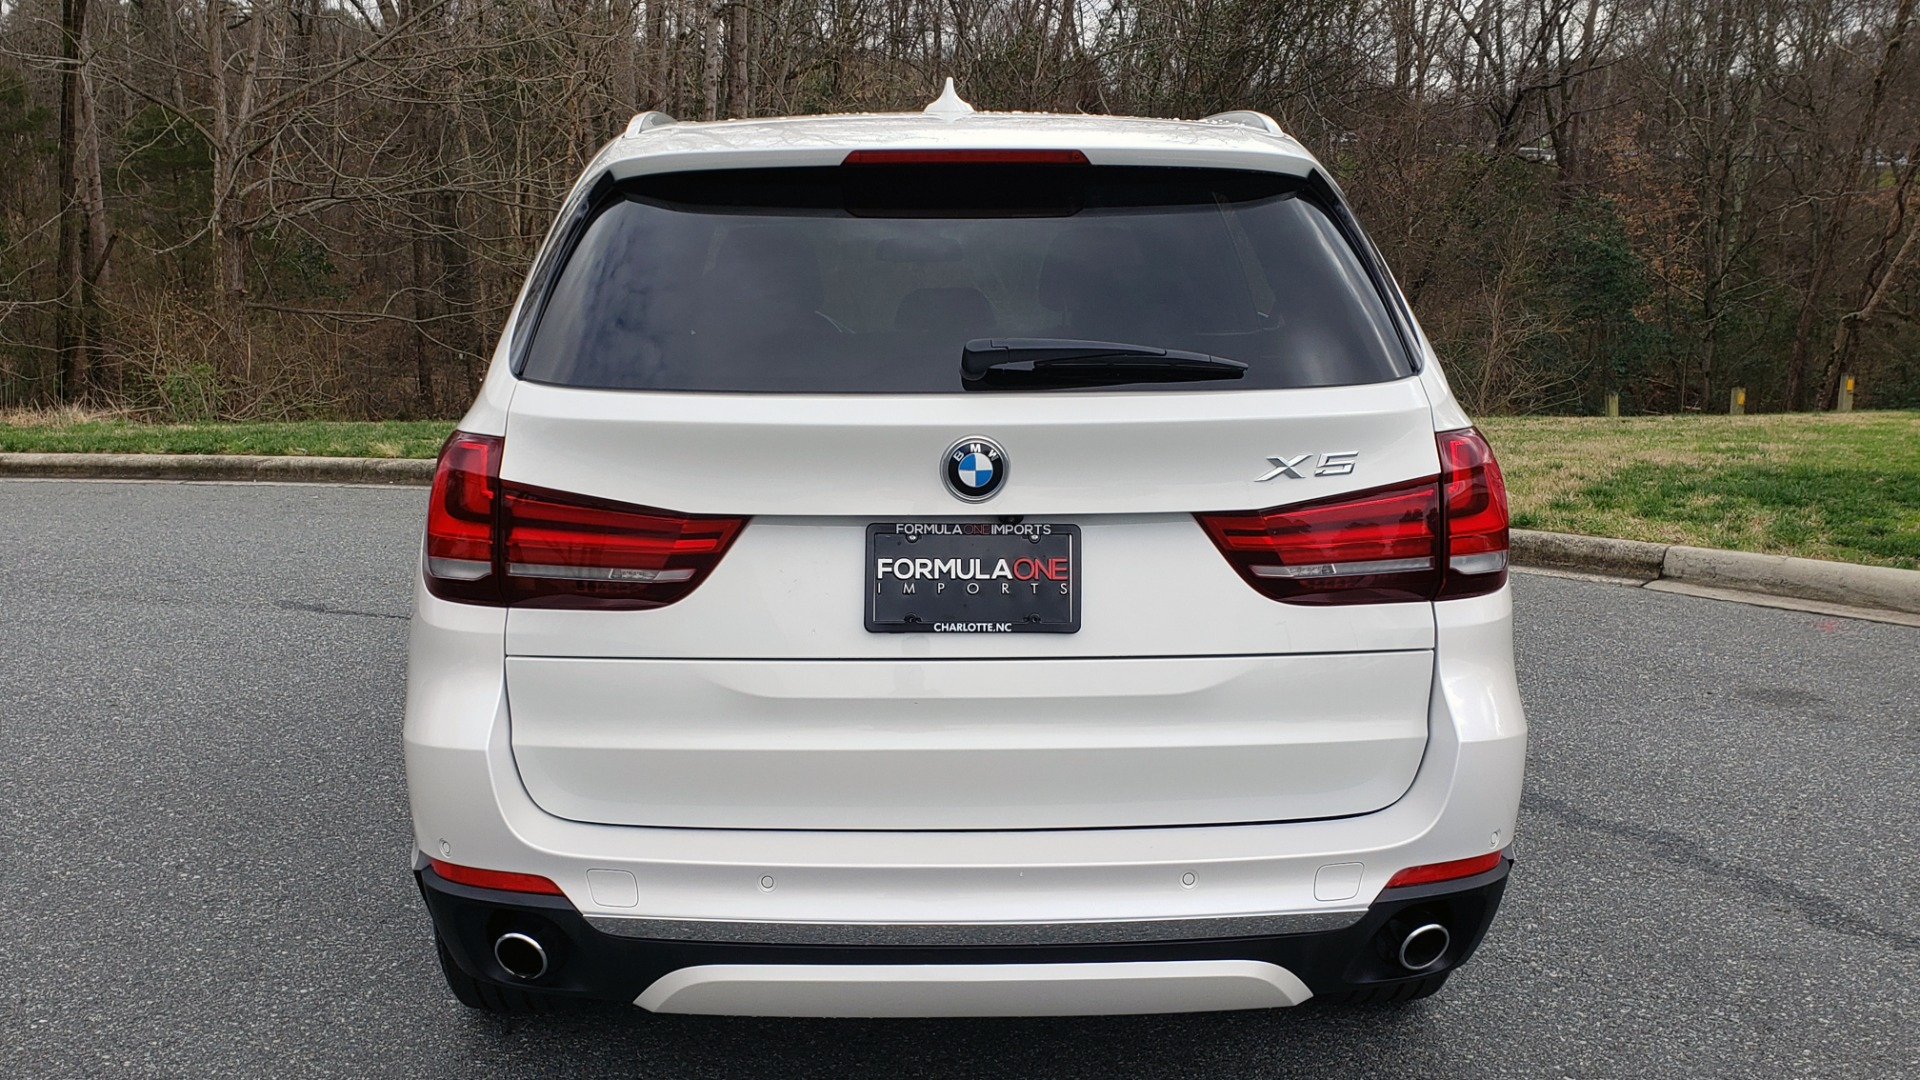 Used 2017 BMW X5 XDRIVE35I / NAV / HUD / DRVR ASST / SUNROOF / REARVIEW for sale Sold at Formula Imports in Charlotte NC 28227 29